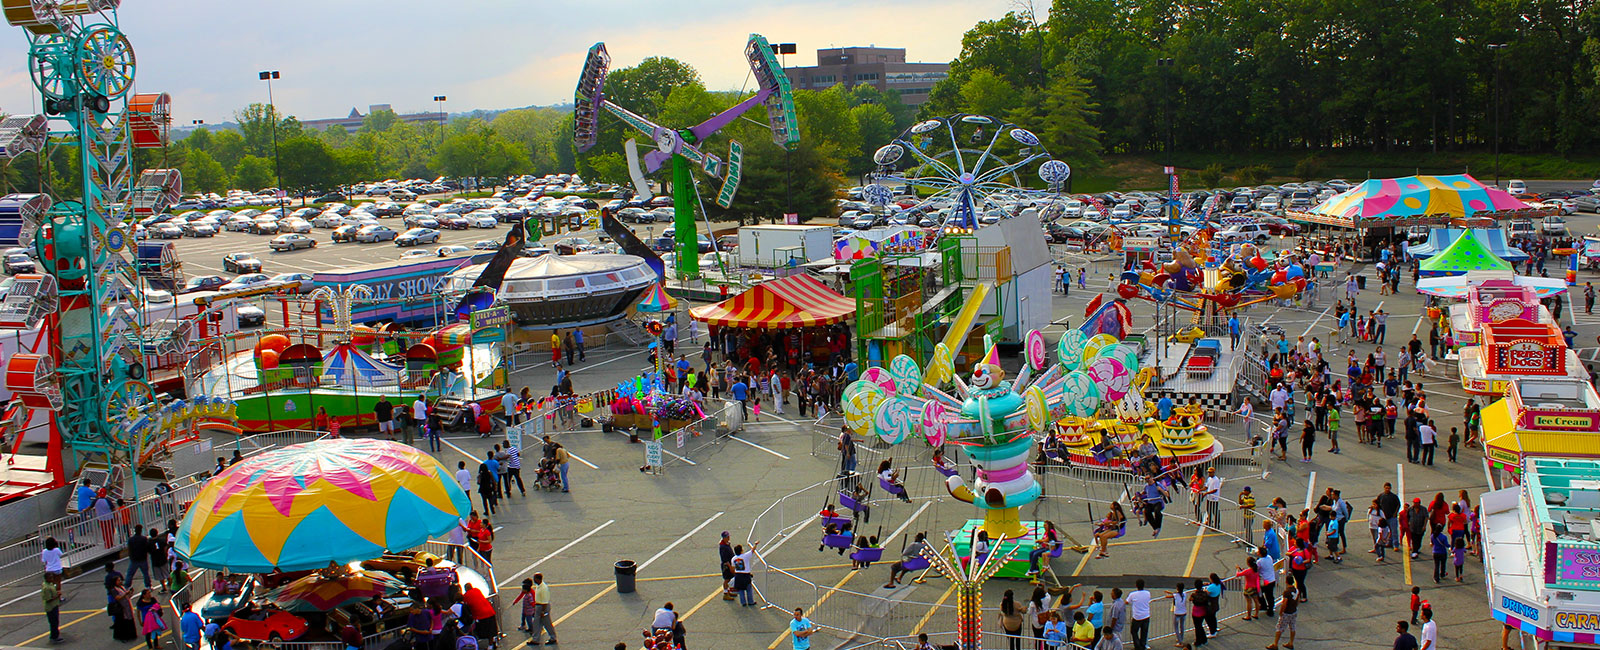 Maryland Carnivals - Jolly Shows